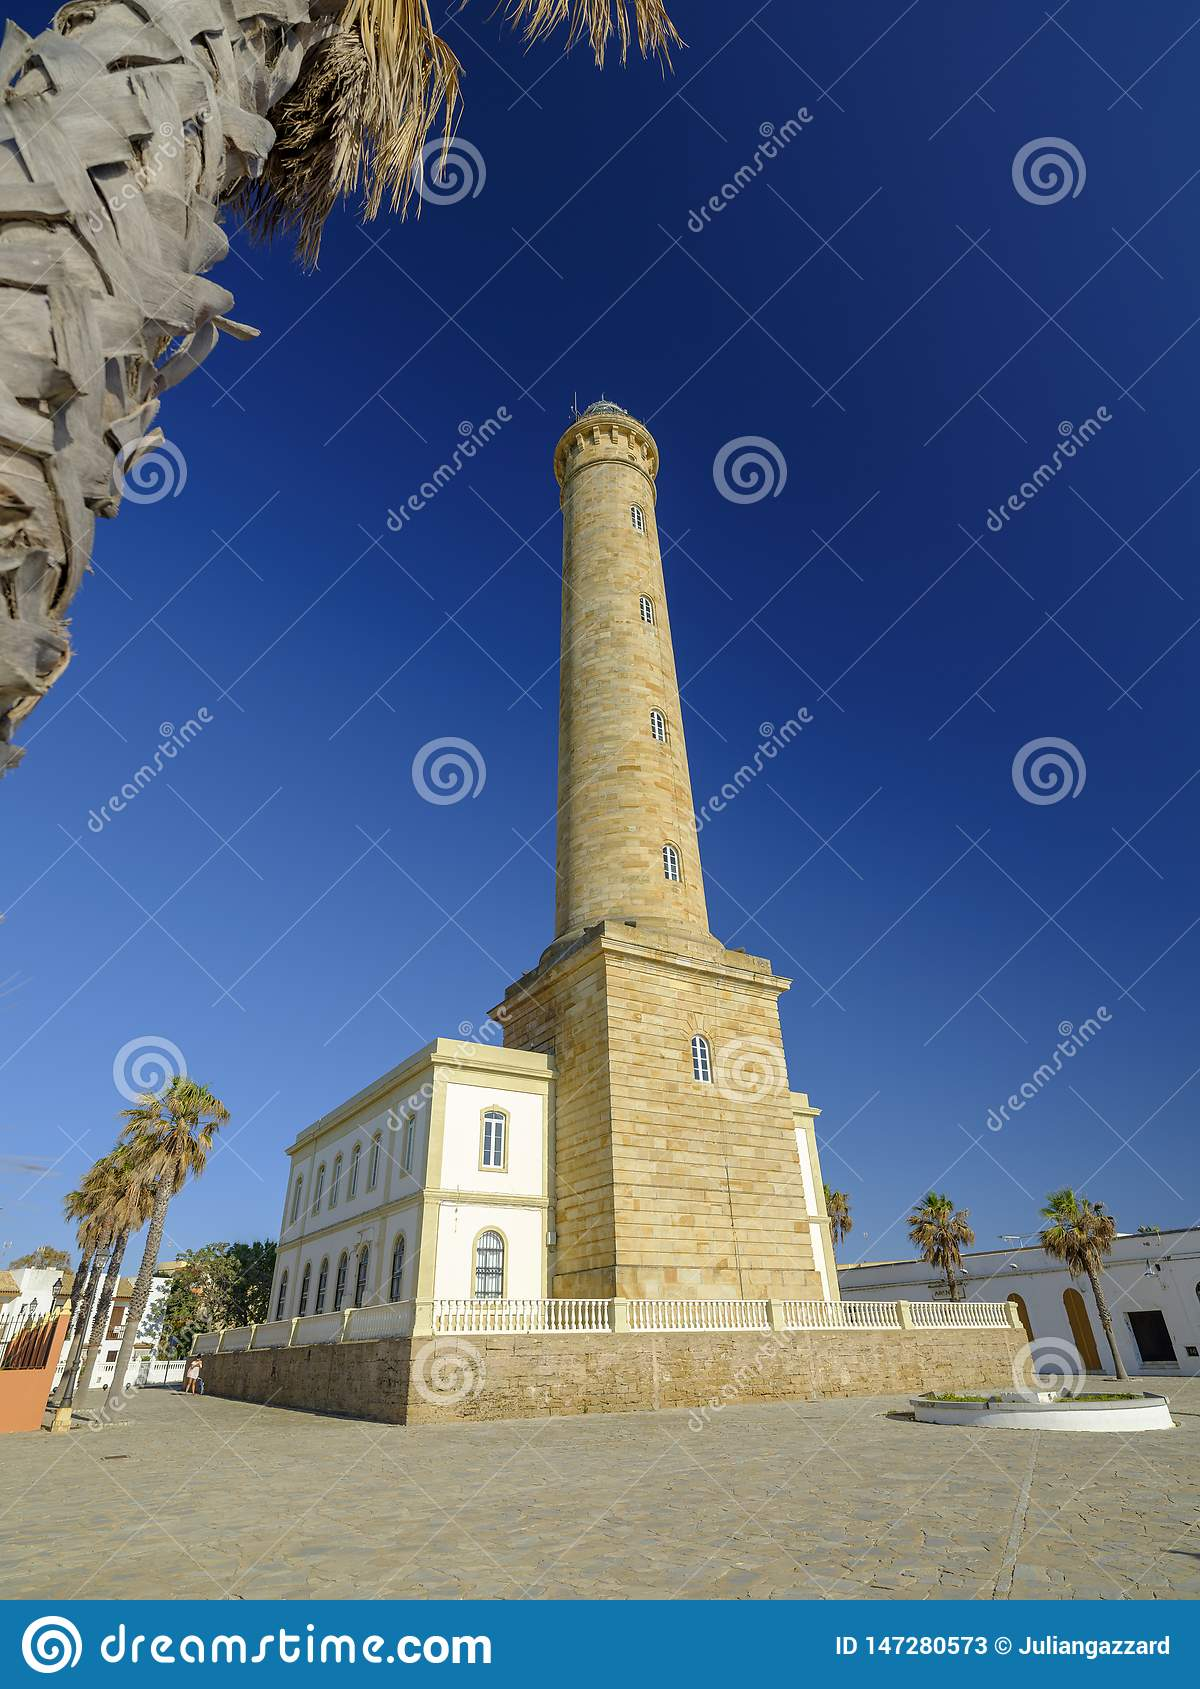 Faro de Chipiona, lightouse at Chipiona, Cadiz, Andalucia, Spain